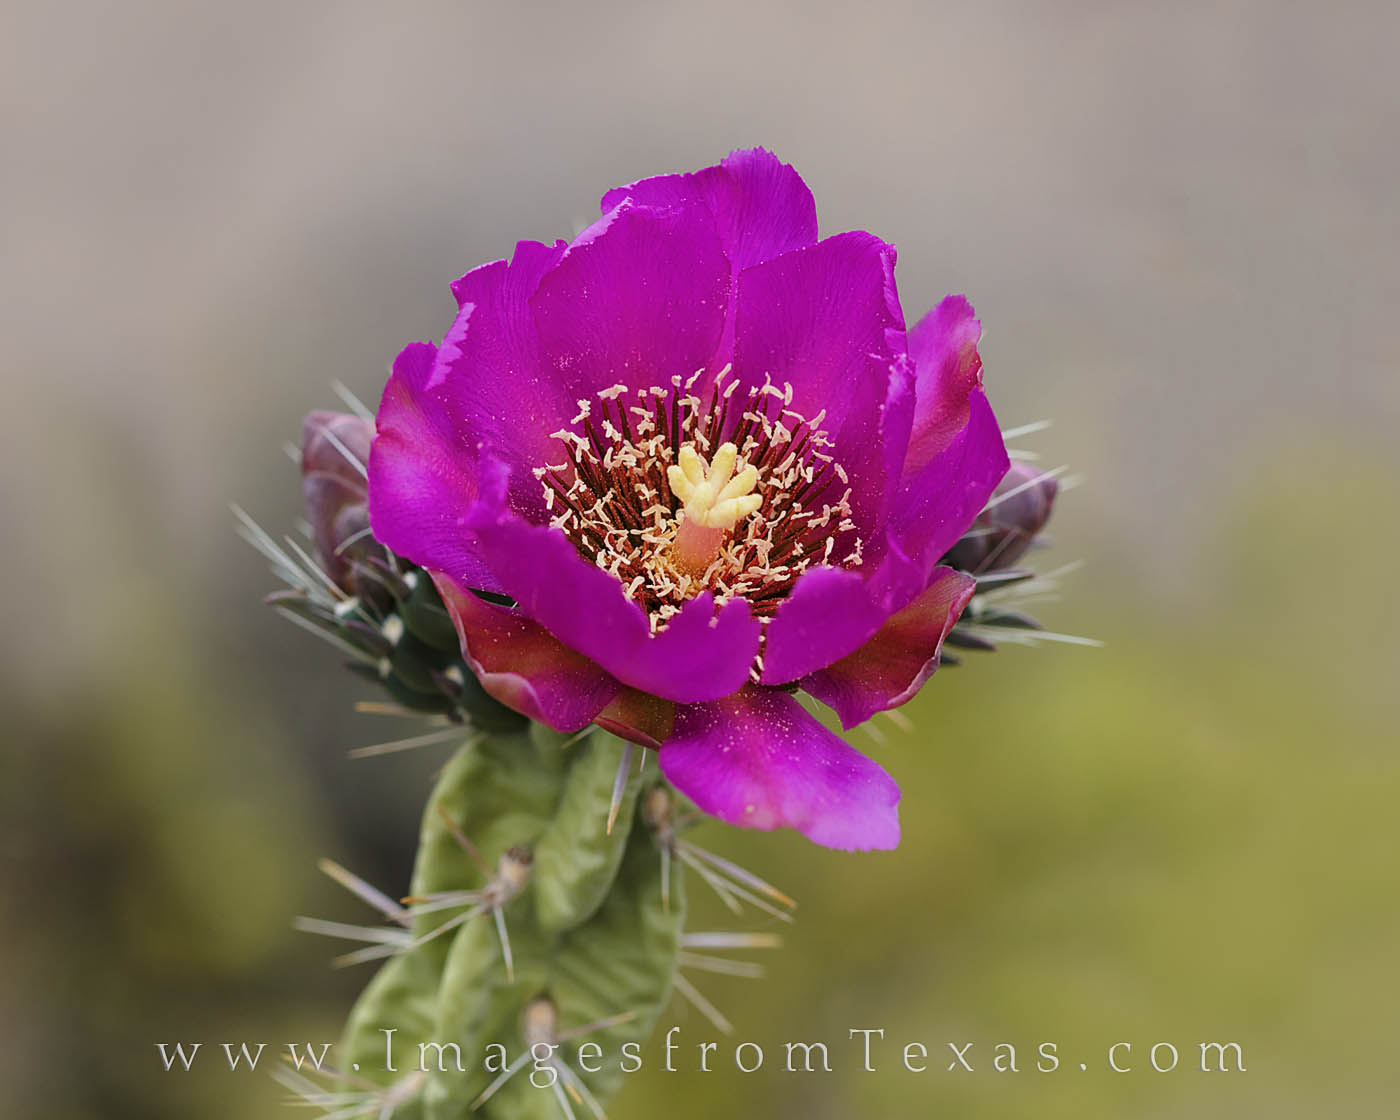 In the Big Bend, a Cholla cactus blooms on a Spring day. Cacti such as this can often bring amazing colors to this desert landscape...